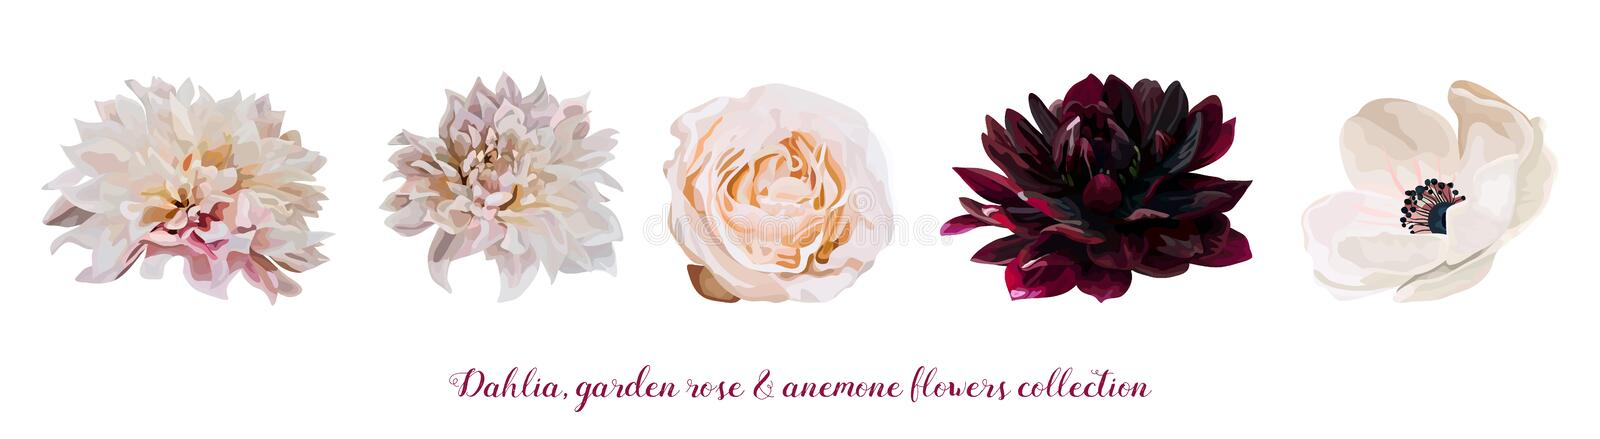 Flower Garden pink Rose, Dahlia Anemone designer different flowers natural peach, burgundy red light pink elements in watercolor s. Tyle set collection Vector royalty free illustration